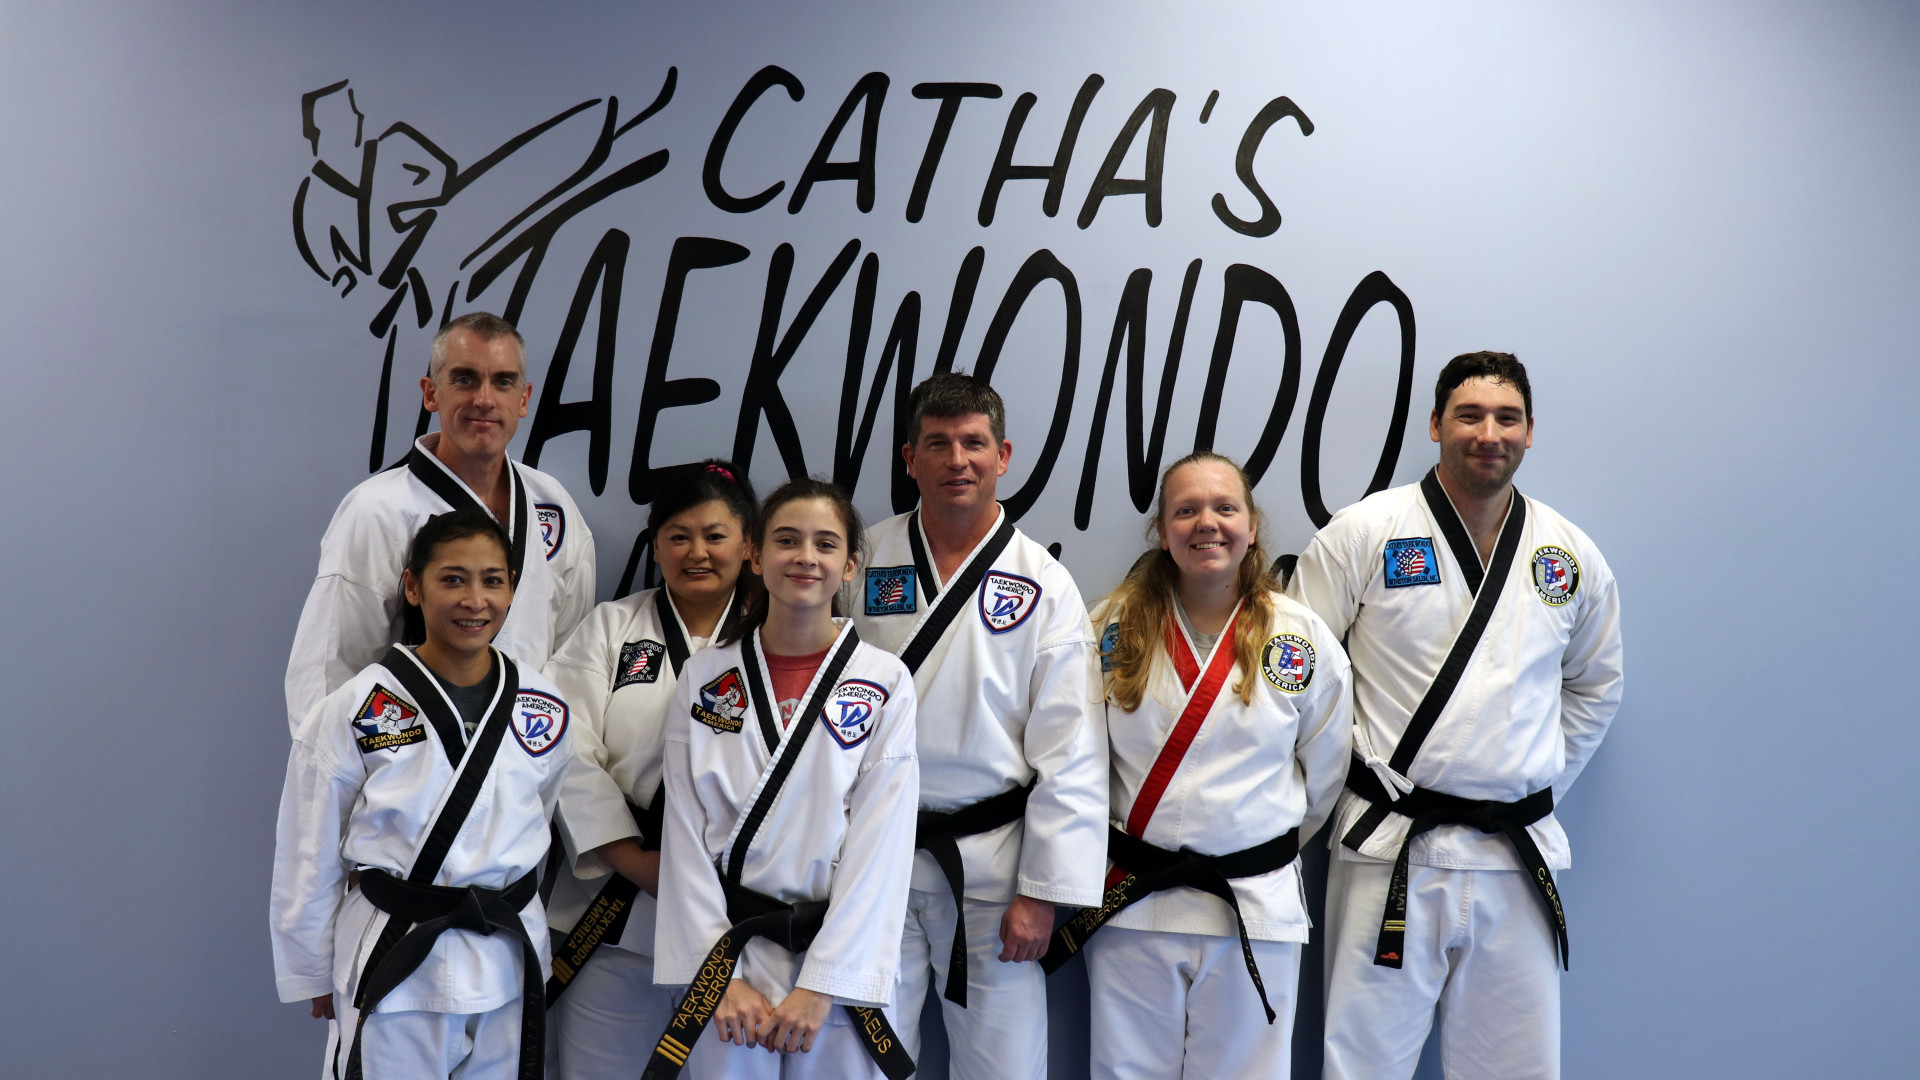 <style> v {   text-shadow: 2px 2px 8px #1e2a55; } </style><strong><v>Kids Martial Arts - Fitness - Self-Defense</br></br>  Safety Compliance:</br> We are offering online classes for all of our programs and are prepared to successfully comply with the requirements set forth to operate our in-person classes safely during the Covid-19 Pandemic</v></strong>